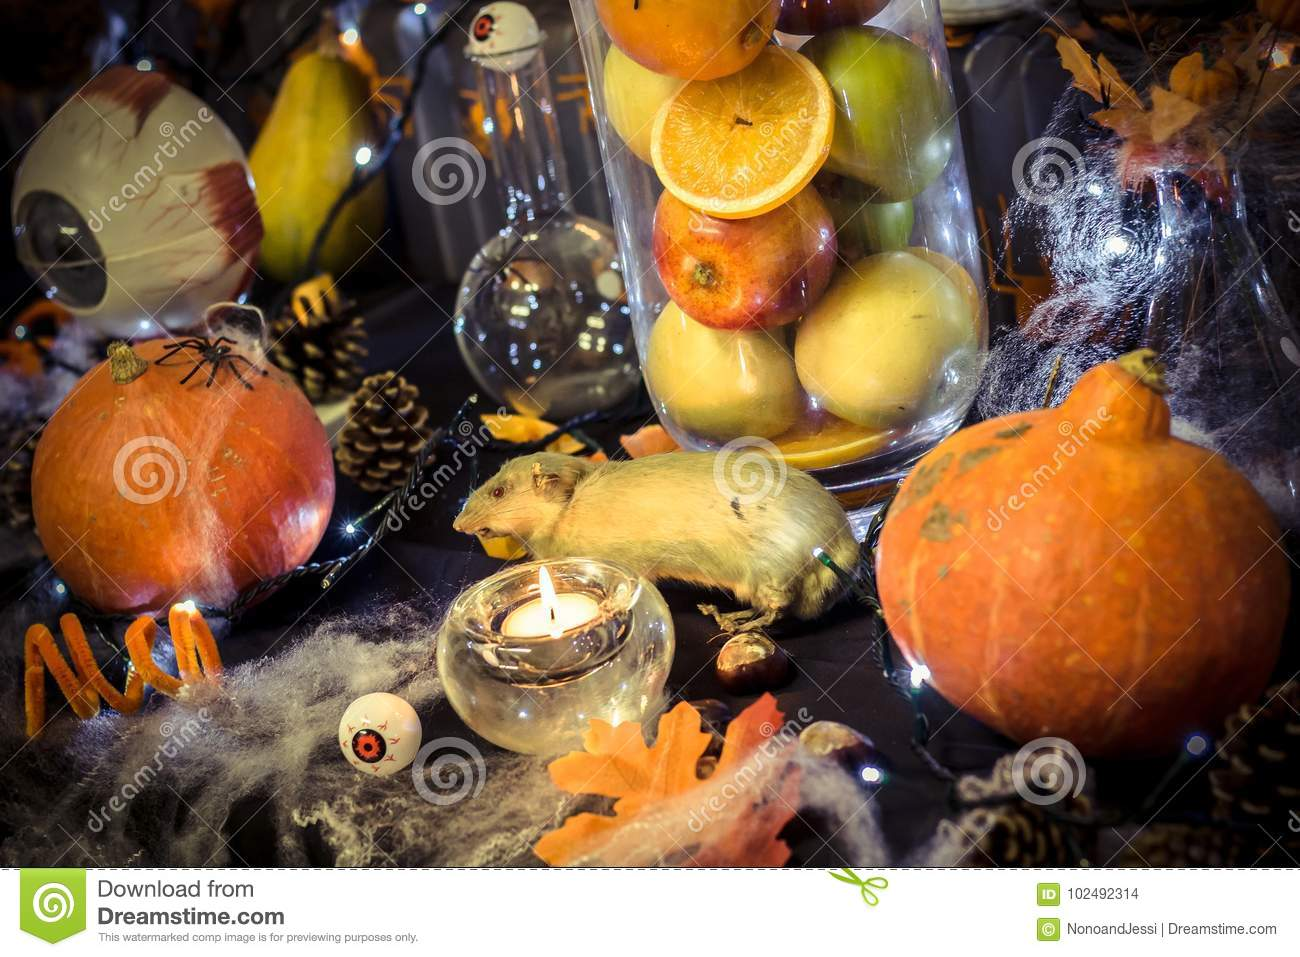 Large halloween decoration table with pumpkins, pine cone, a rat, candles, eyes, a light garland, a vase with fruits and cobwebs